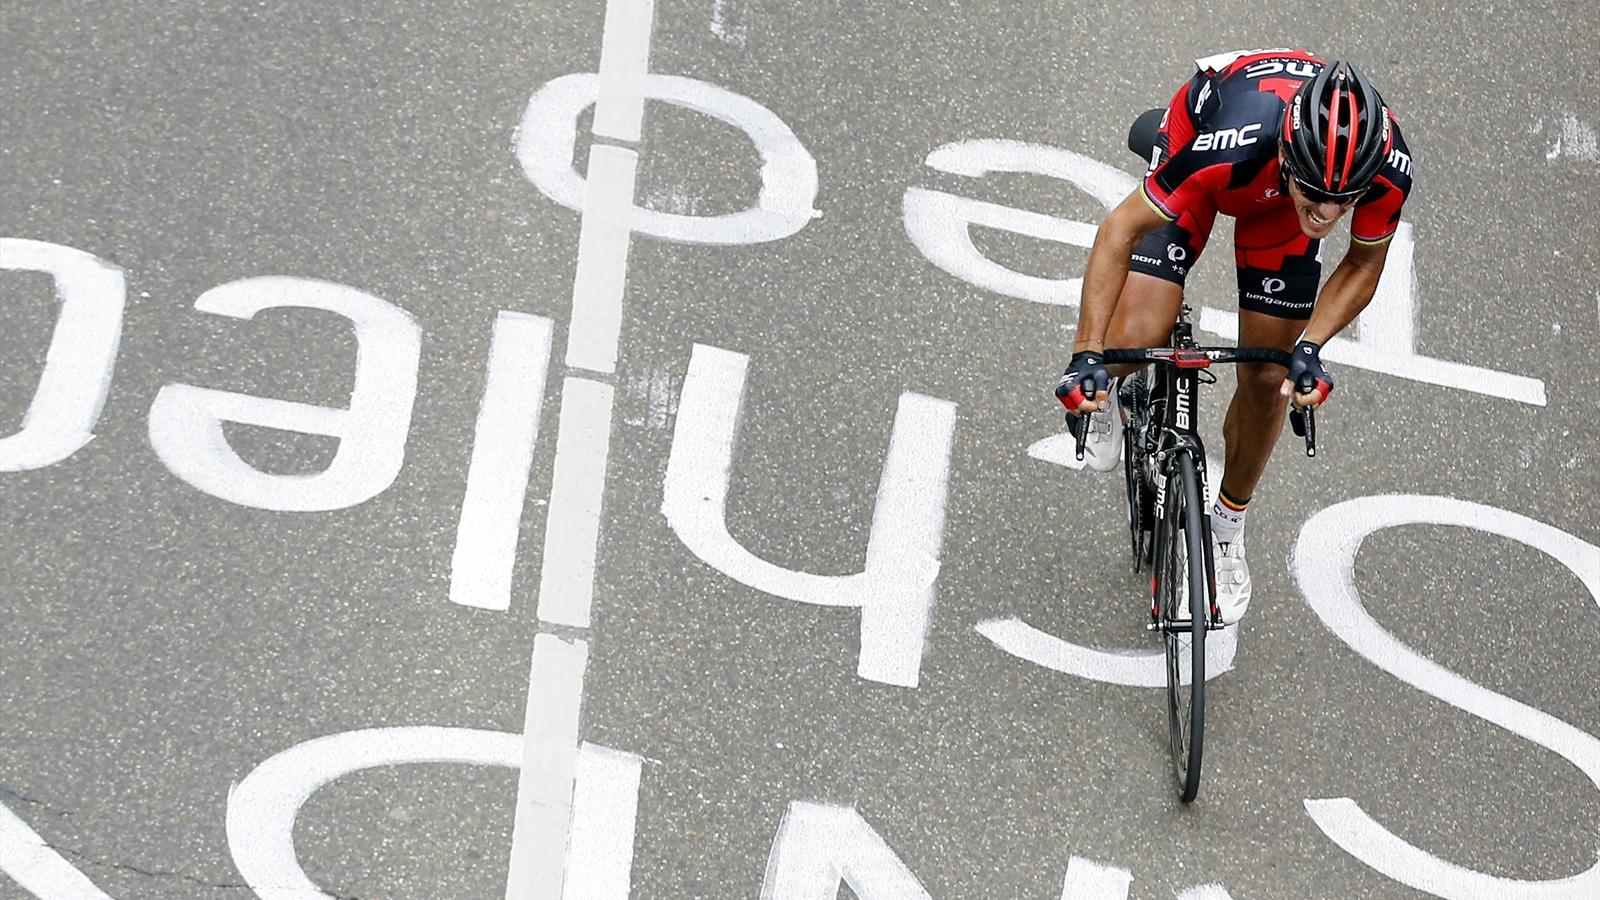 Philippe Gilbert (BMC) attacks on the Cauberg on 2014 Amstel Gold Race